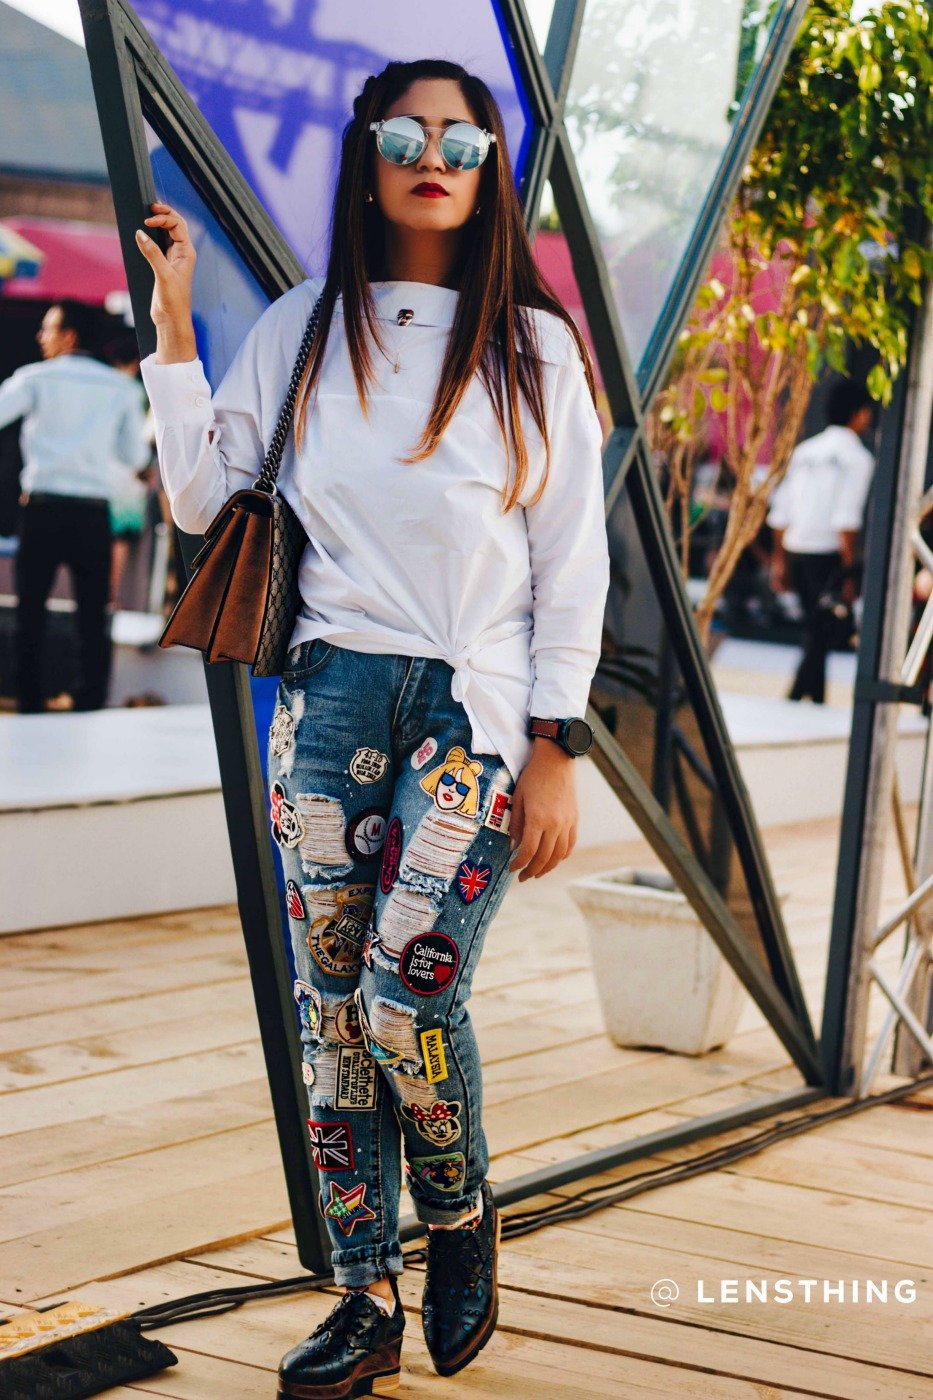 how to patch jeans aifwss17 street style elle femina